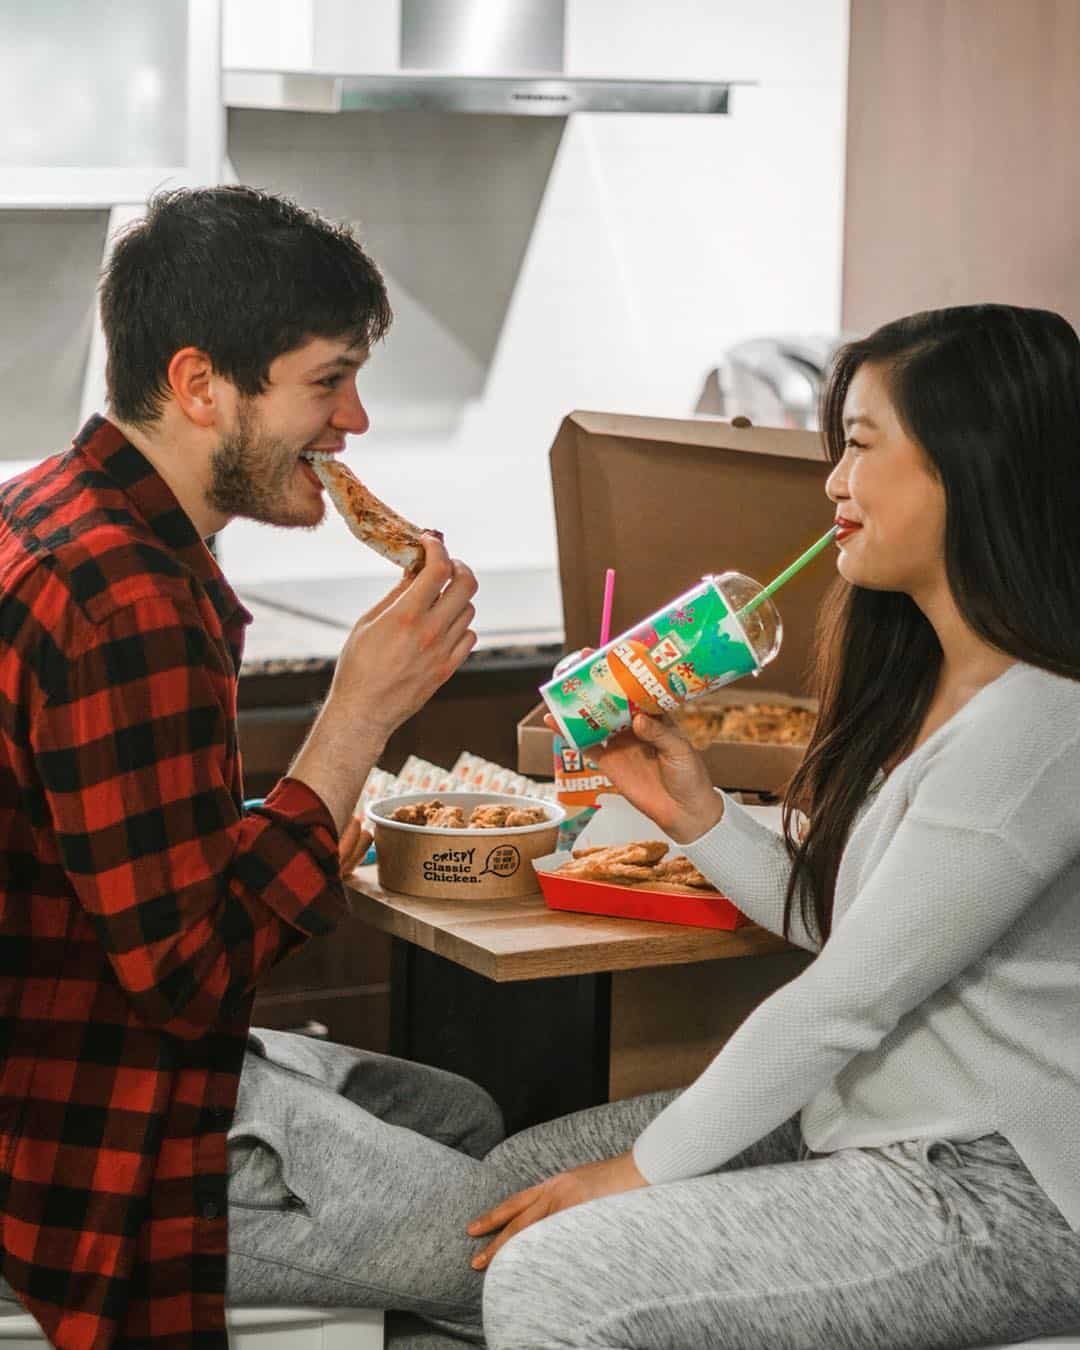 7-Eleven pizza date night at home